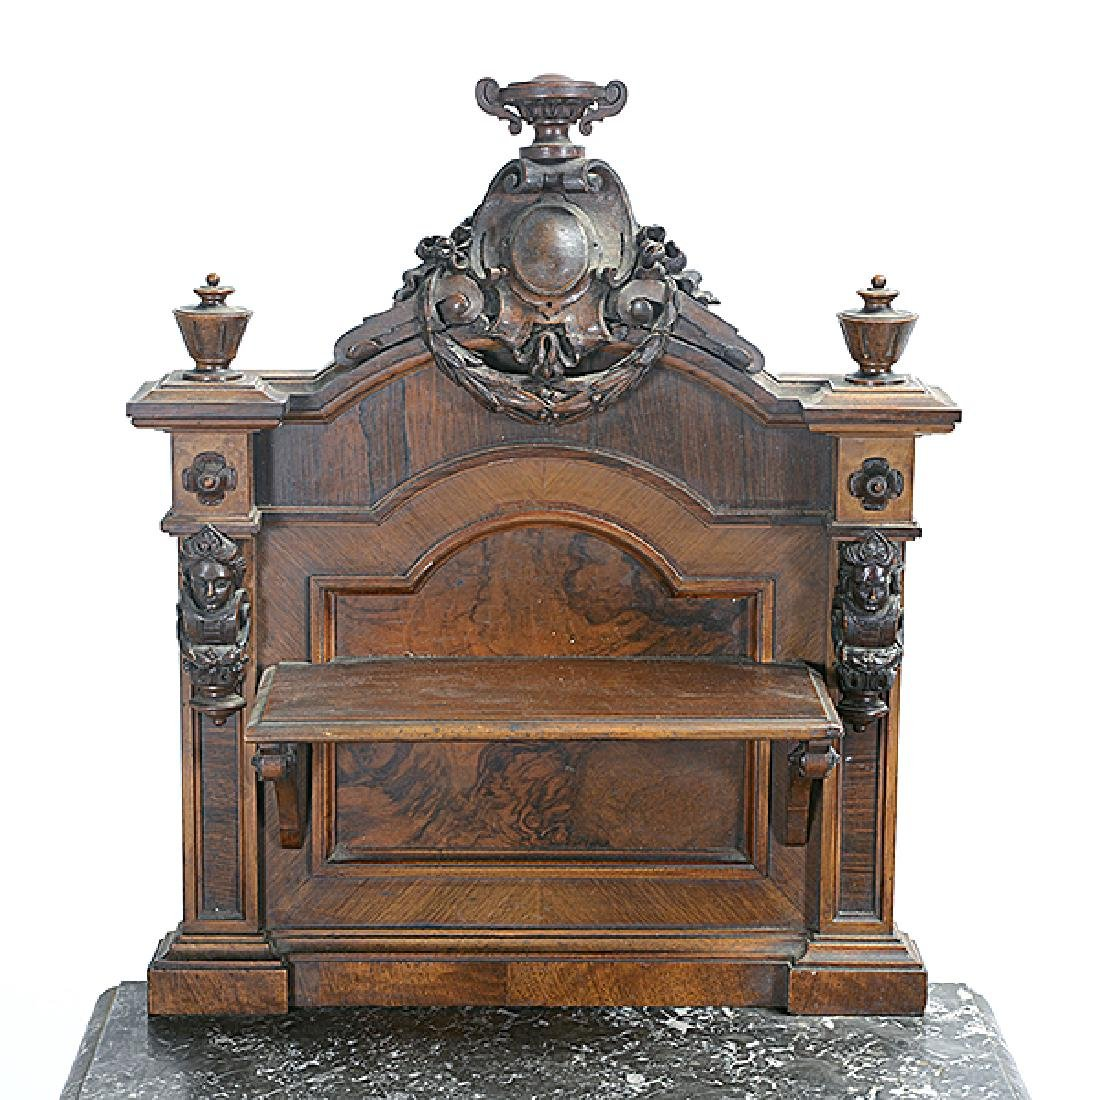 Pair of Rococo Revival Bedside Tables with Commode - 3